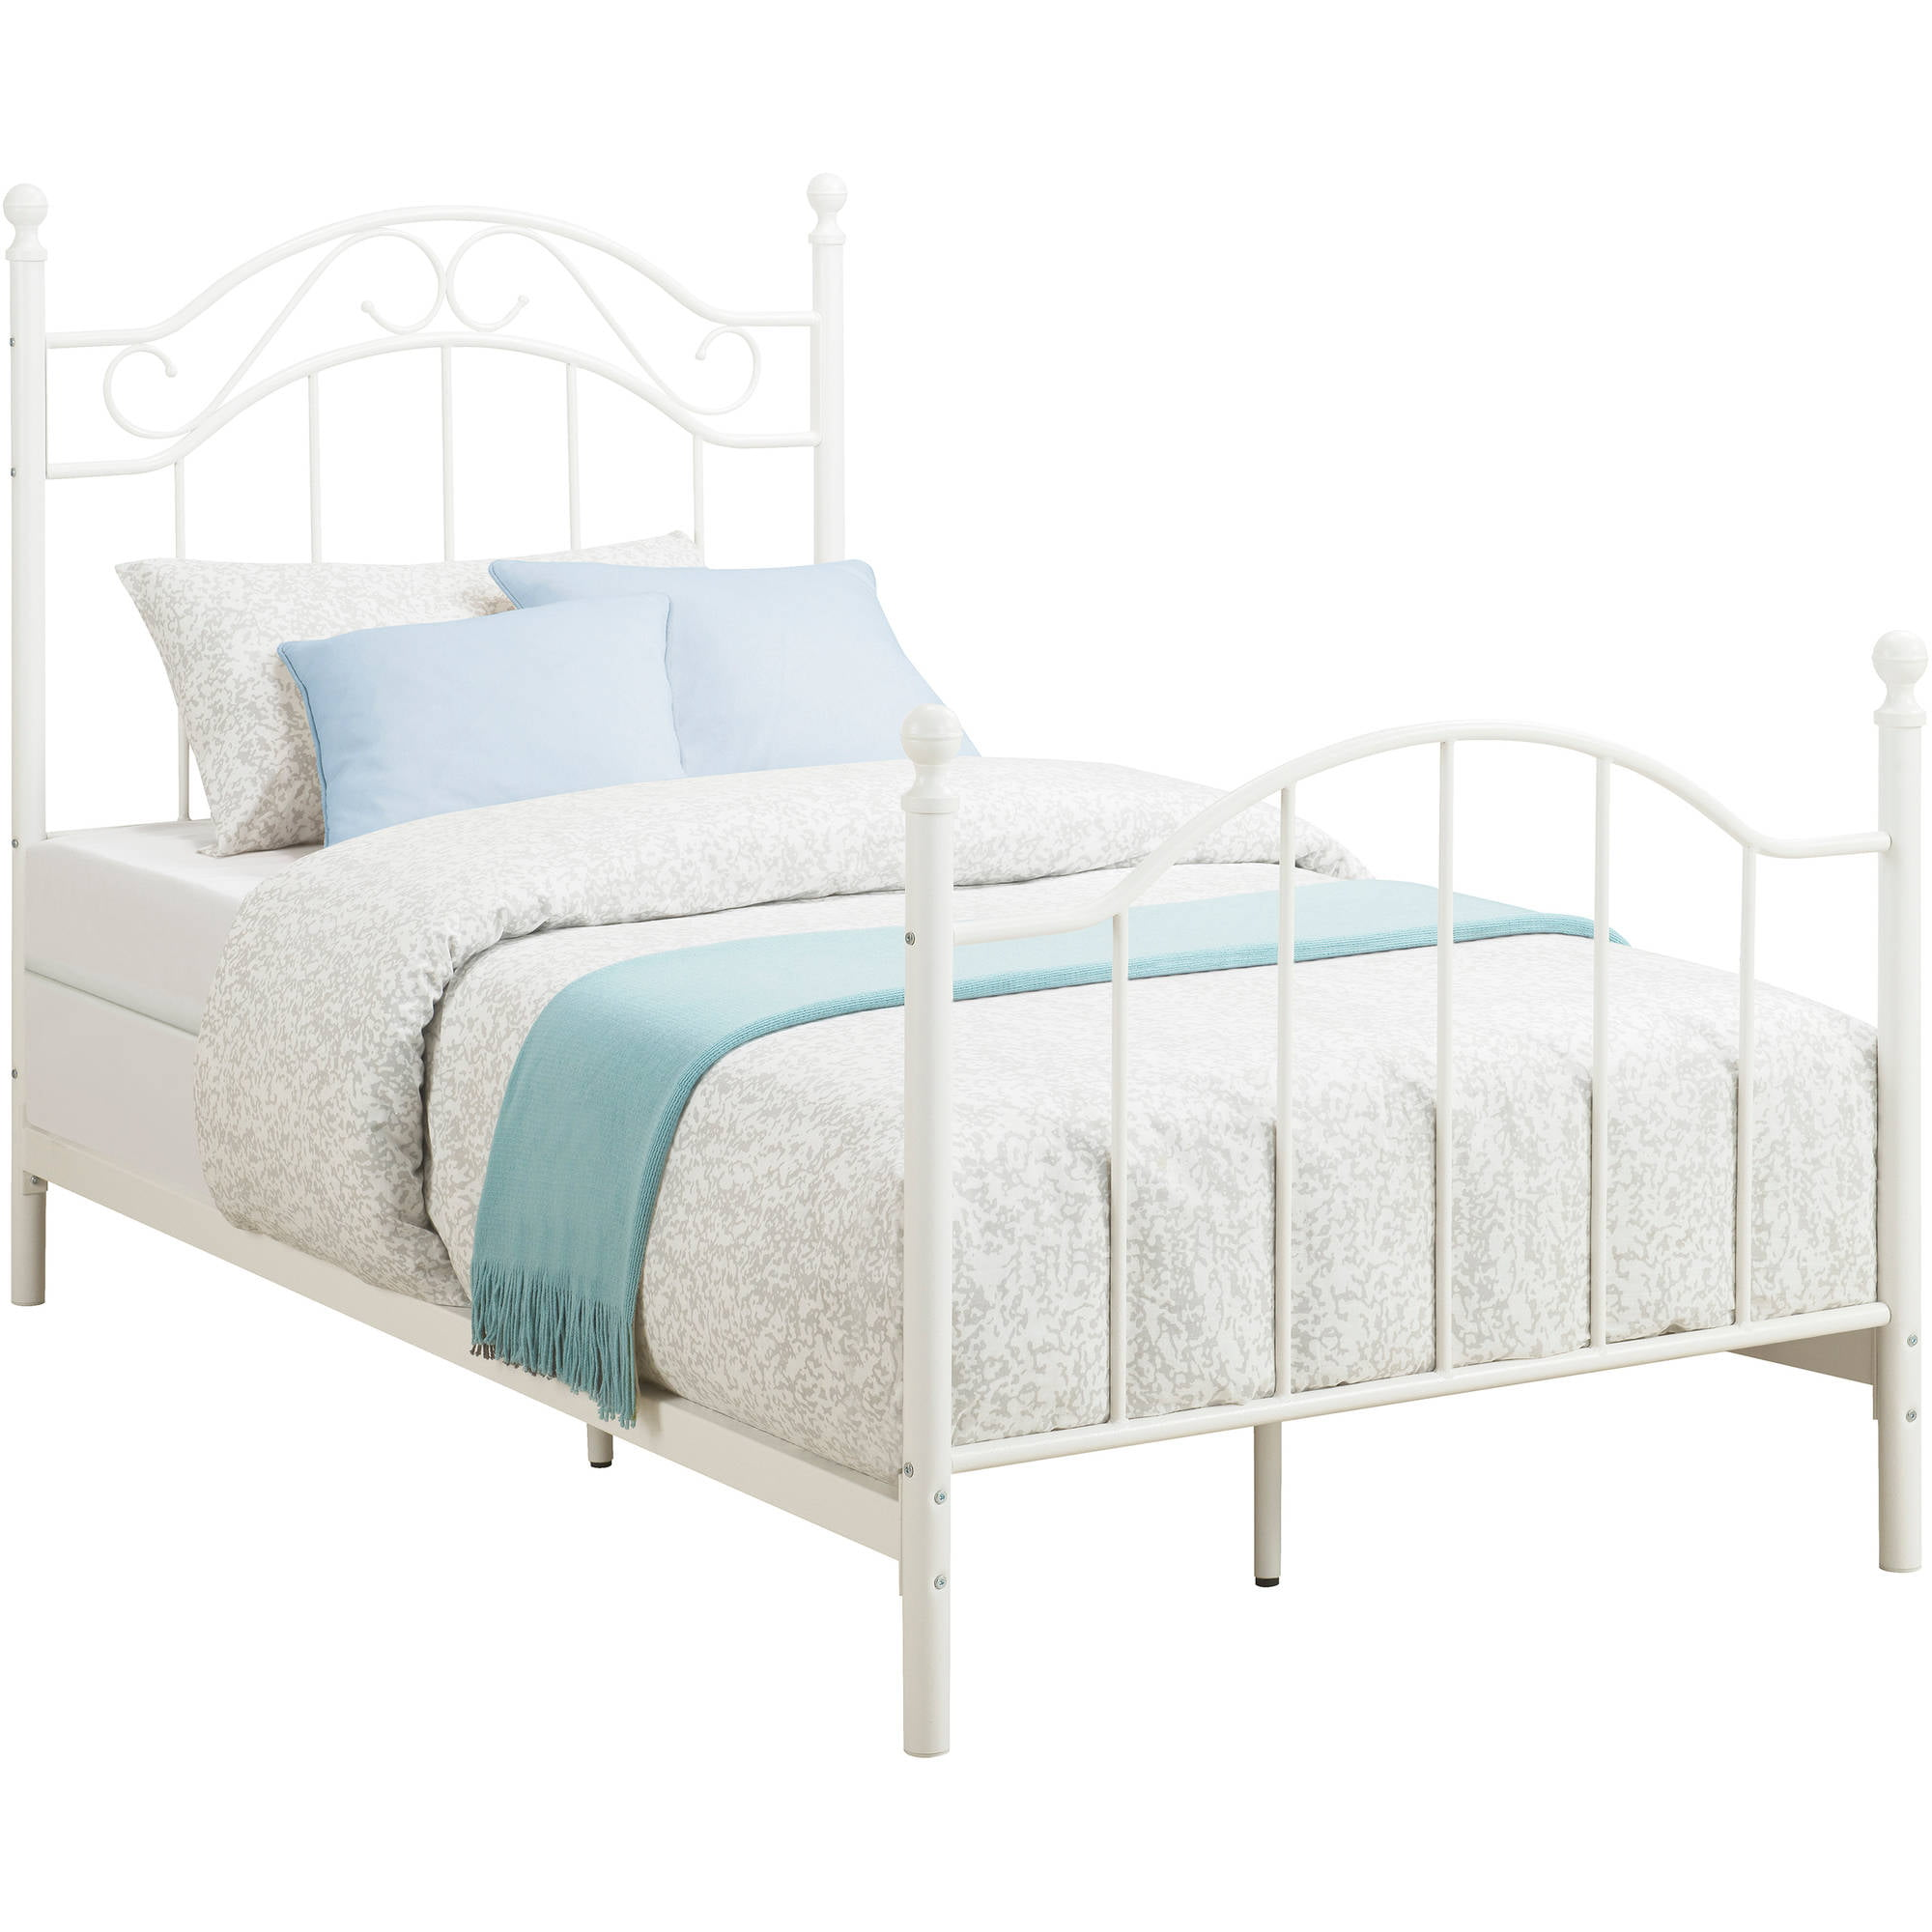 mainstays twin metal bed walmartcom - Metal Frame Twin Bed